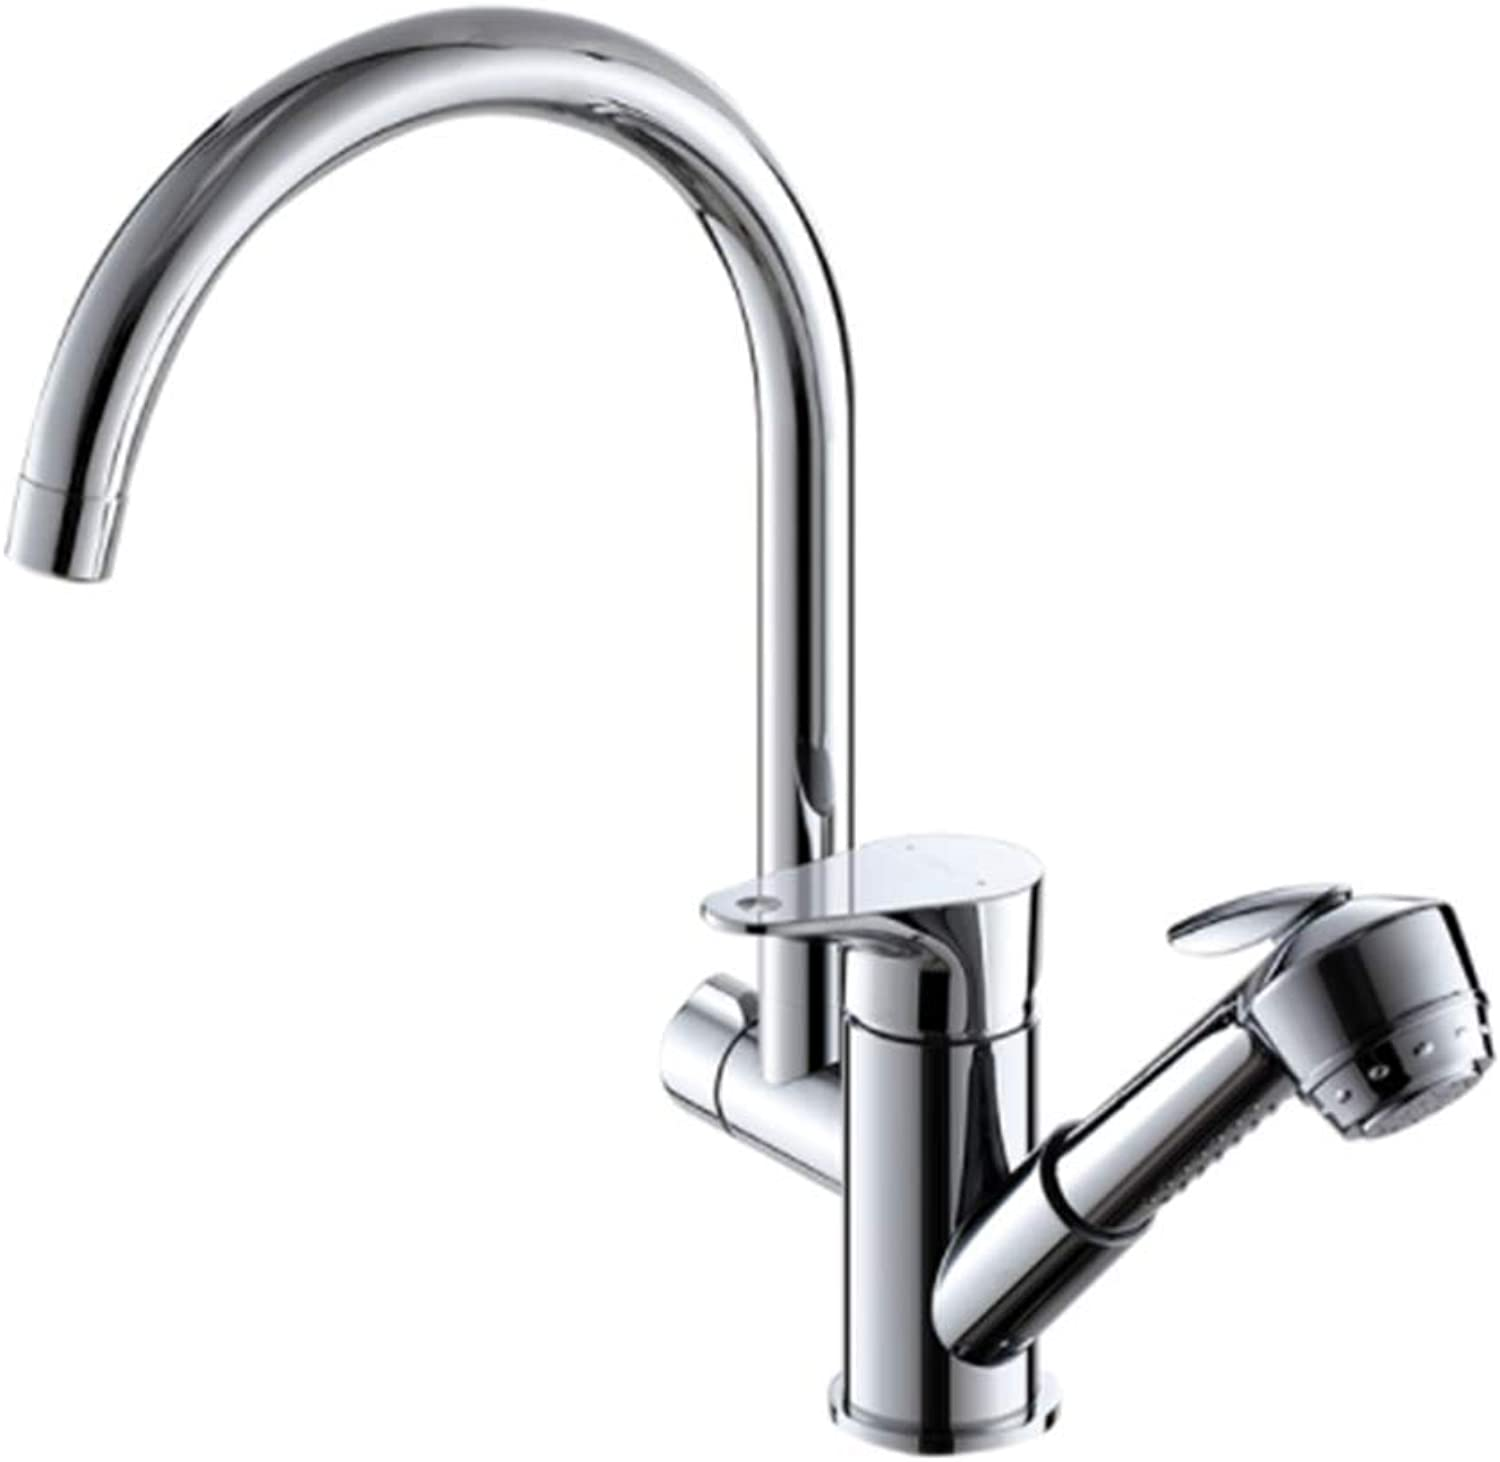 Kitchen Faucet Tapstainless Steelkitchen Faucet Prokitchen Faucet, Hot and Cold Pull Trough, Tap, Brass, Vegetable Basin Faucet.